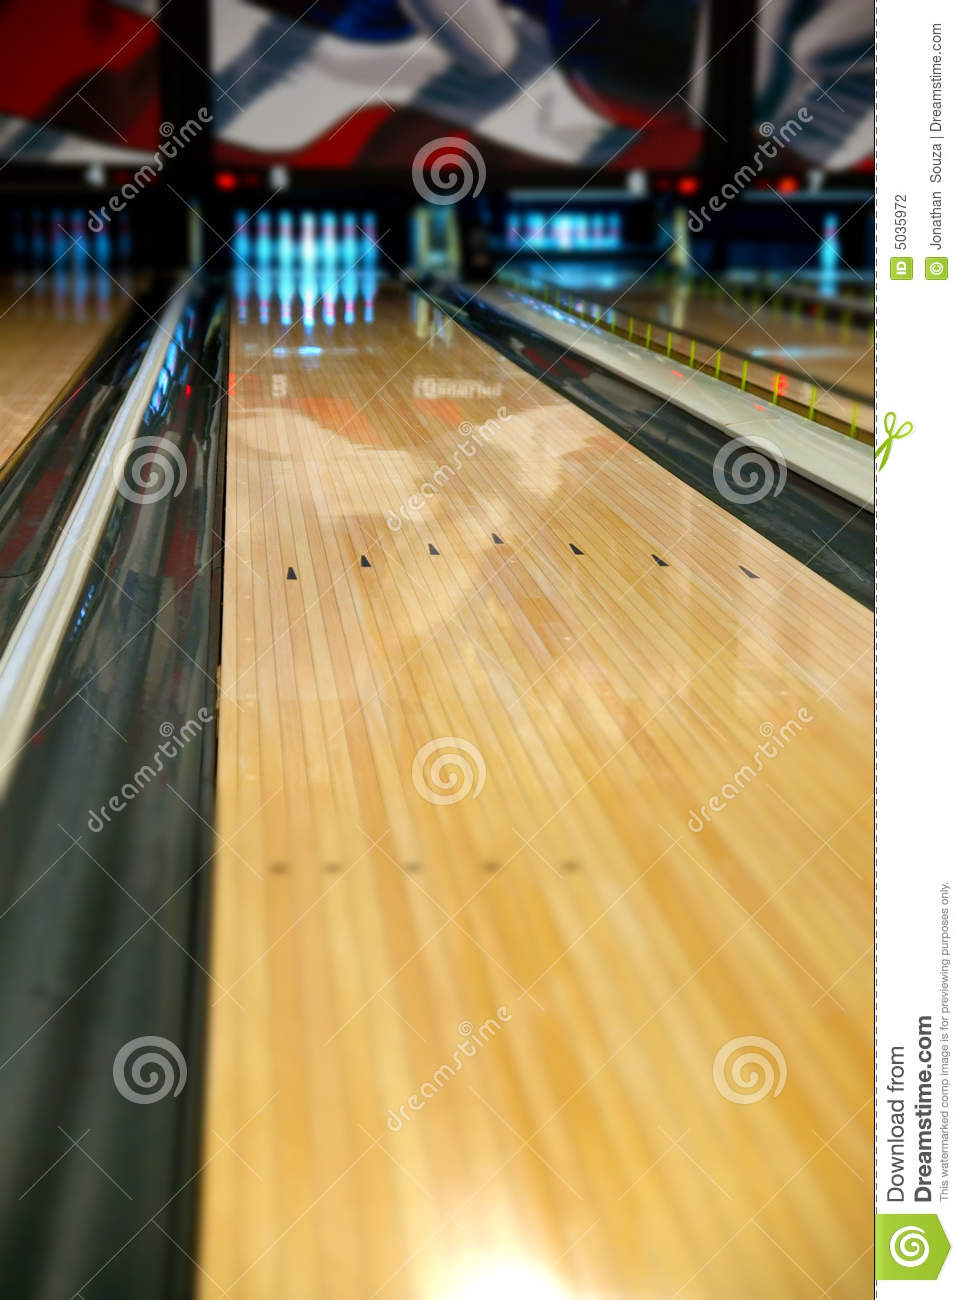 Bowling Lane Arrows Stock Photography Image 5035972